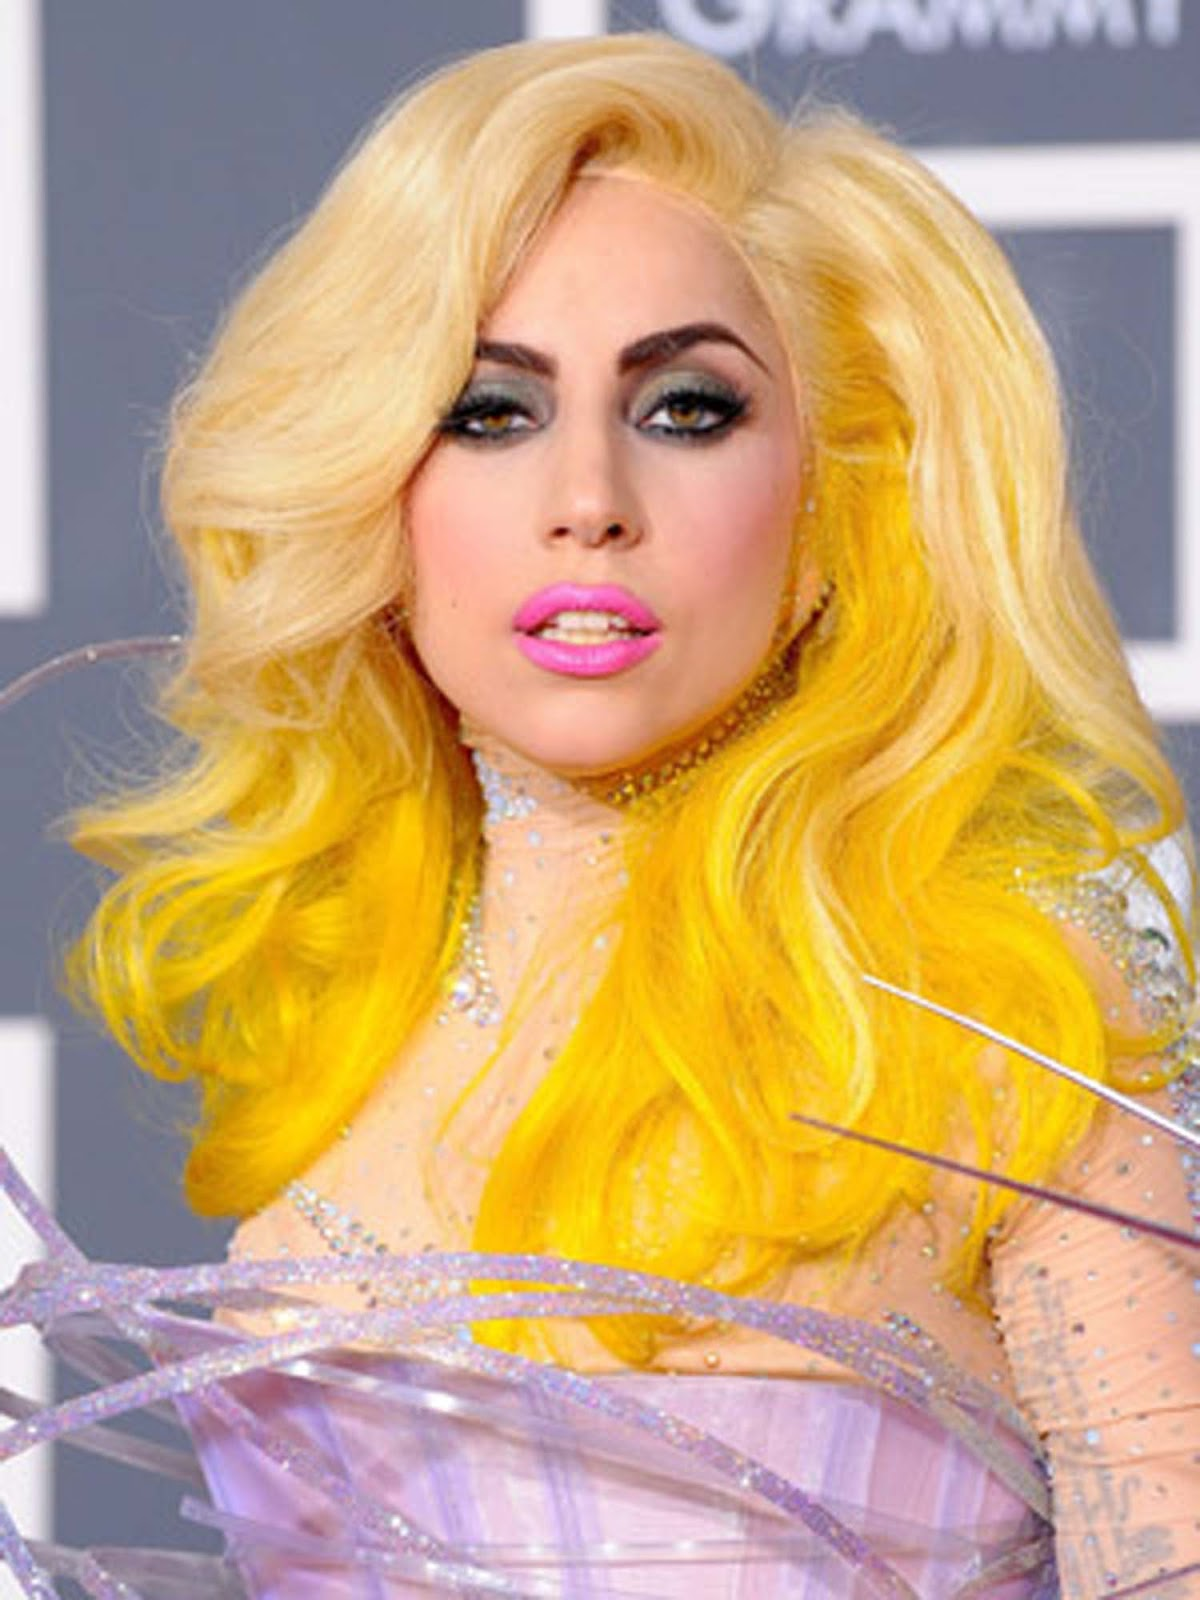 Blonde Curly Hairstyle for Short Hair: Lady Gaga Hair Styles